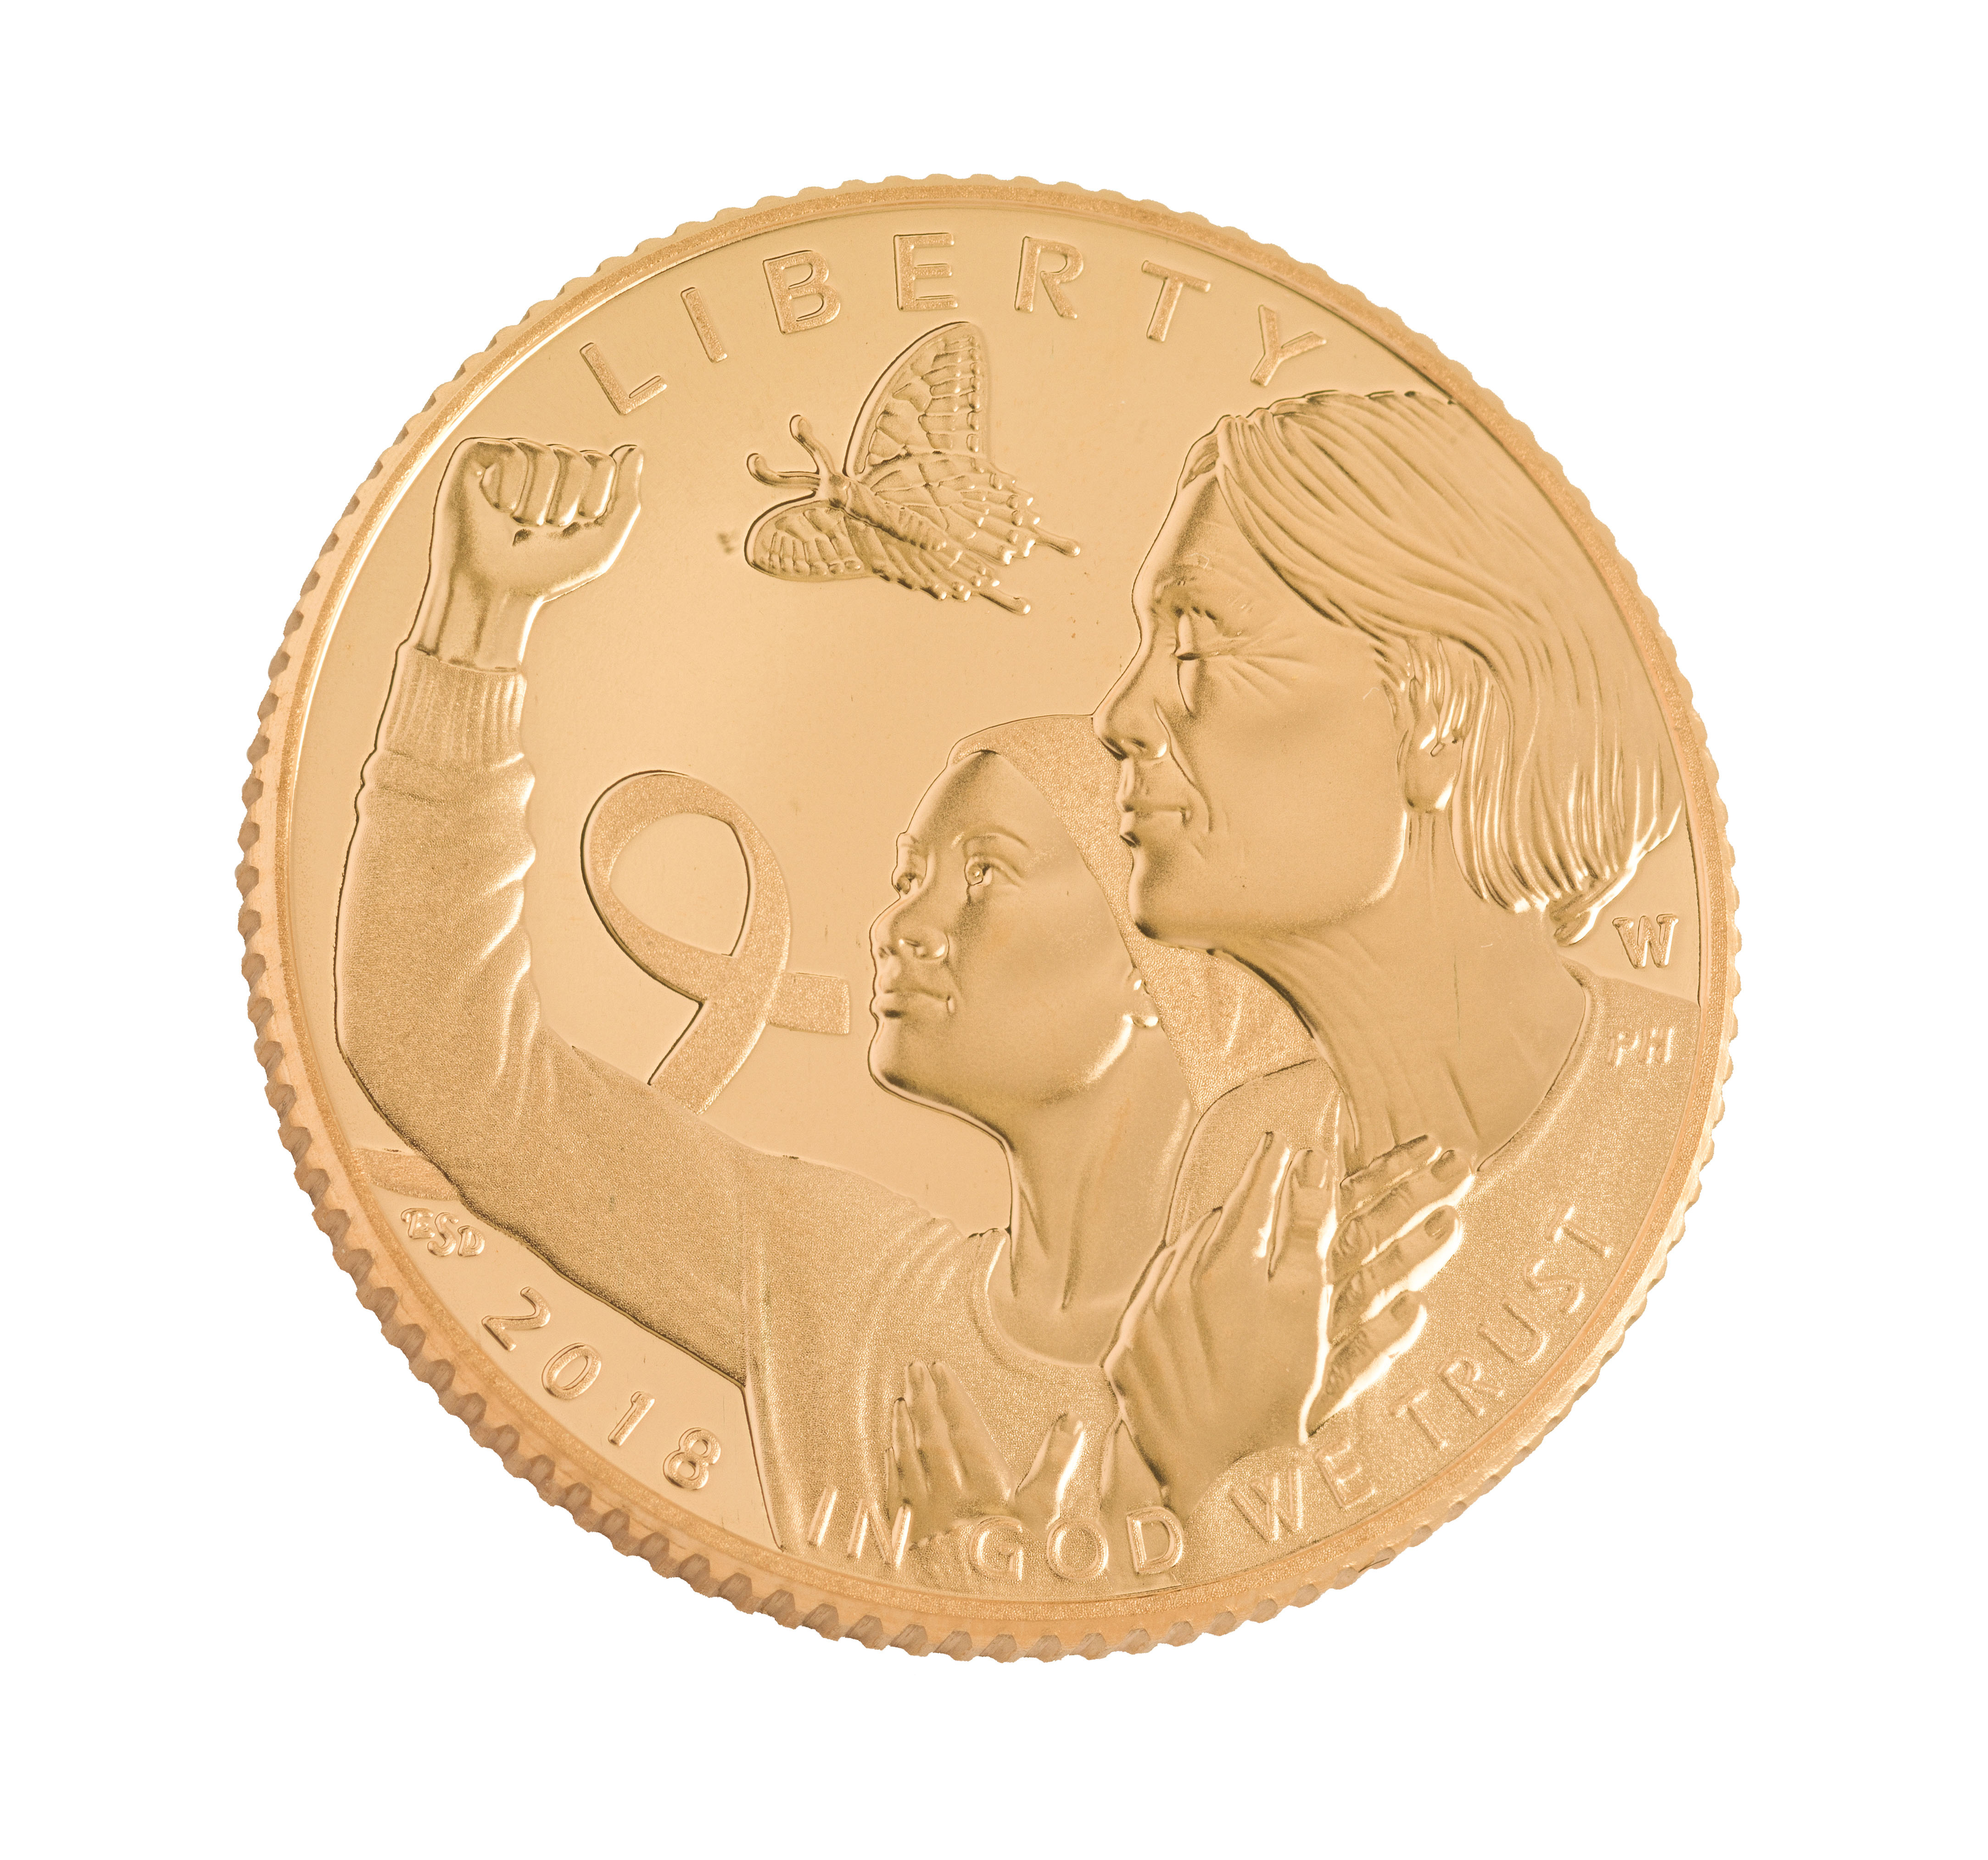 A golden coin with a woman and ribbon on it